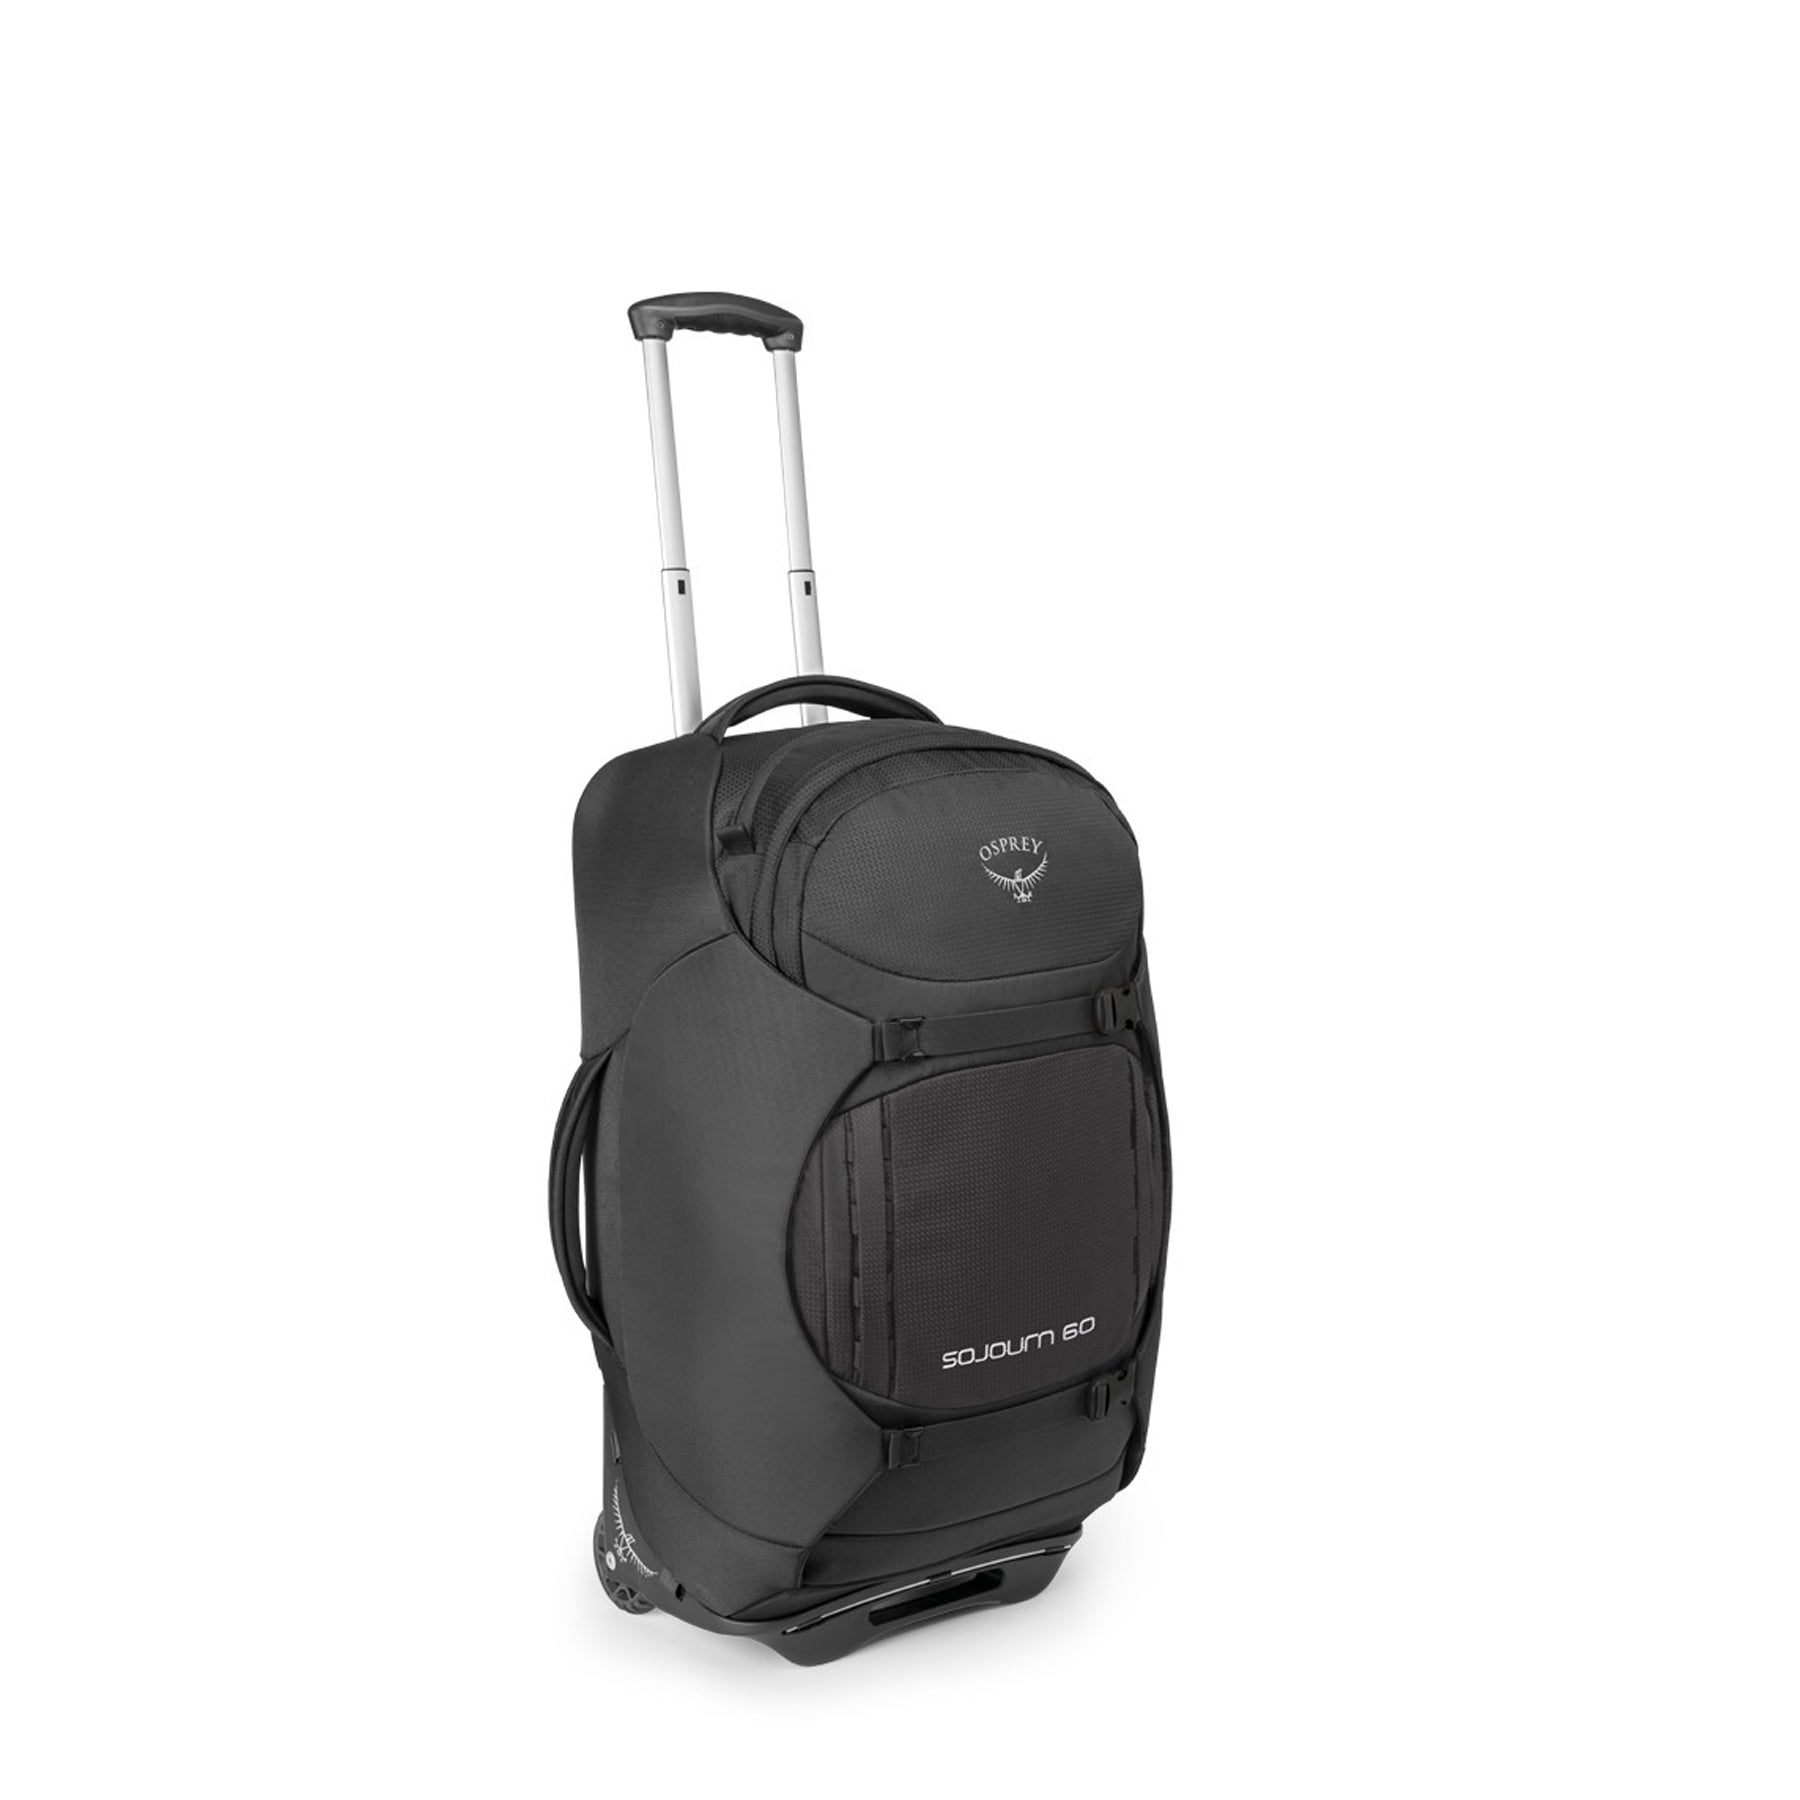 Bagage Osprey Sojourn 60 - Flash Black